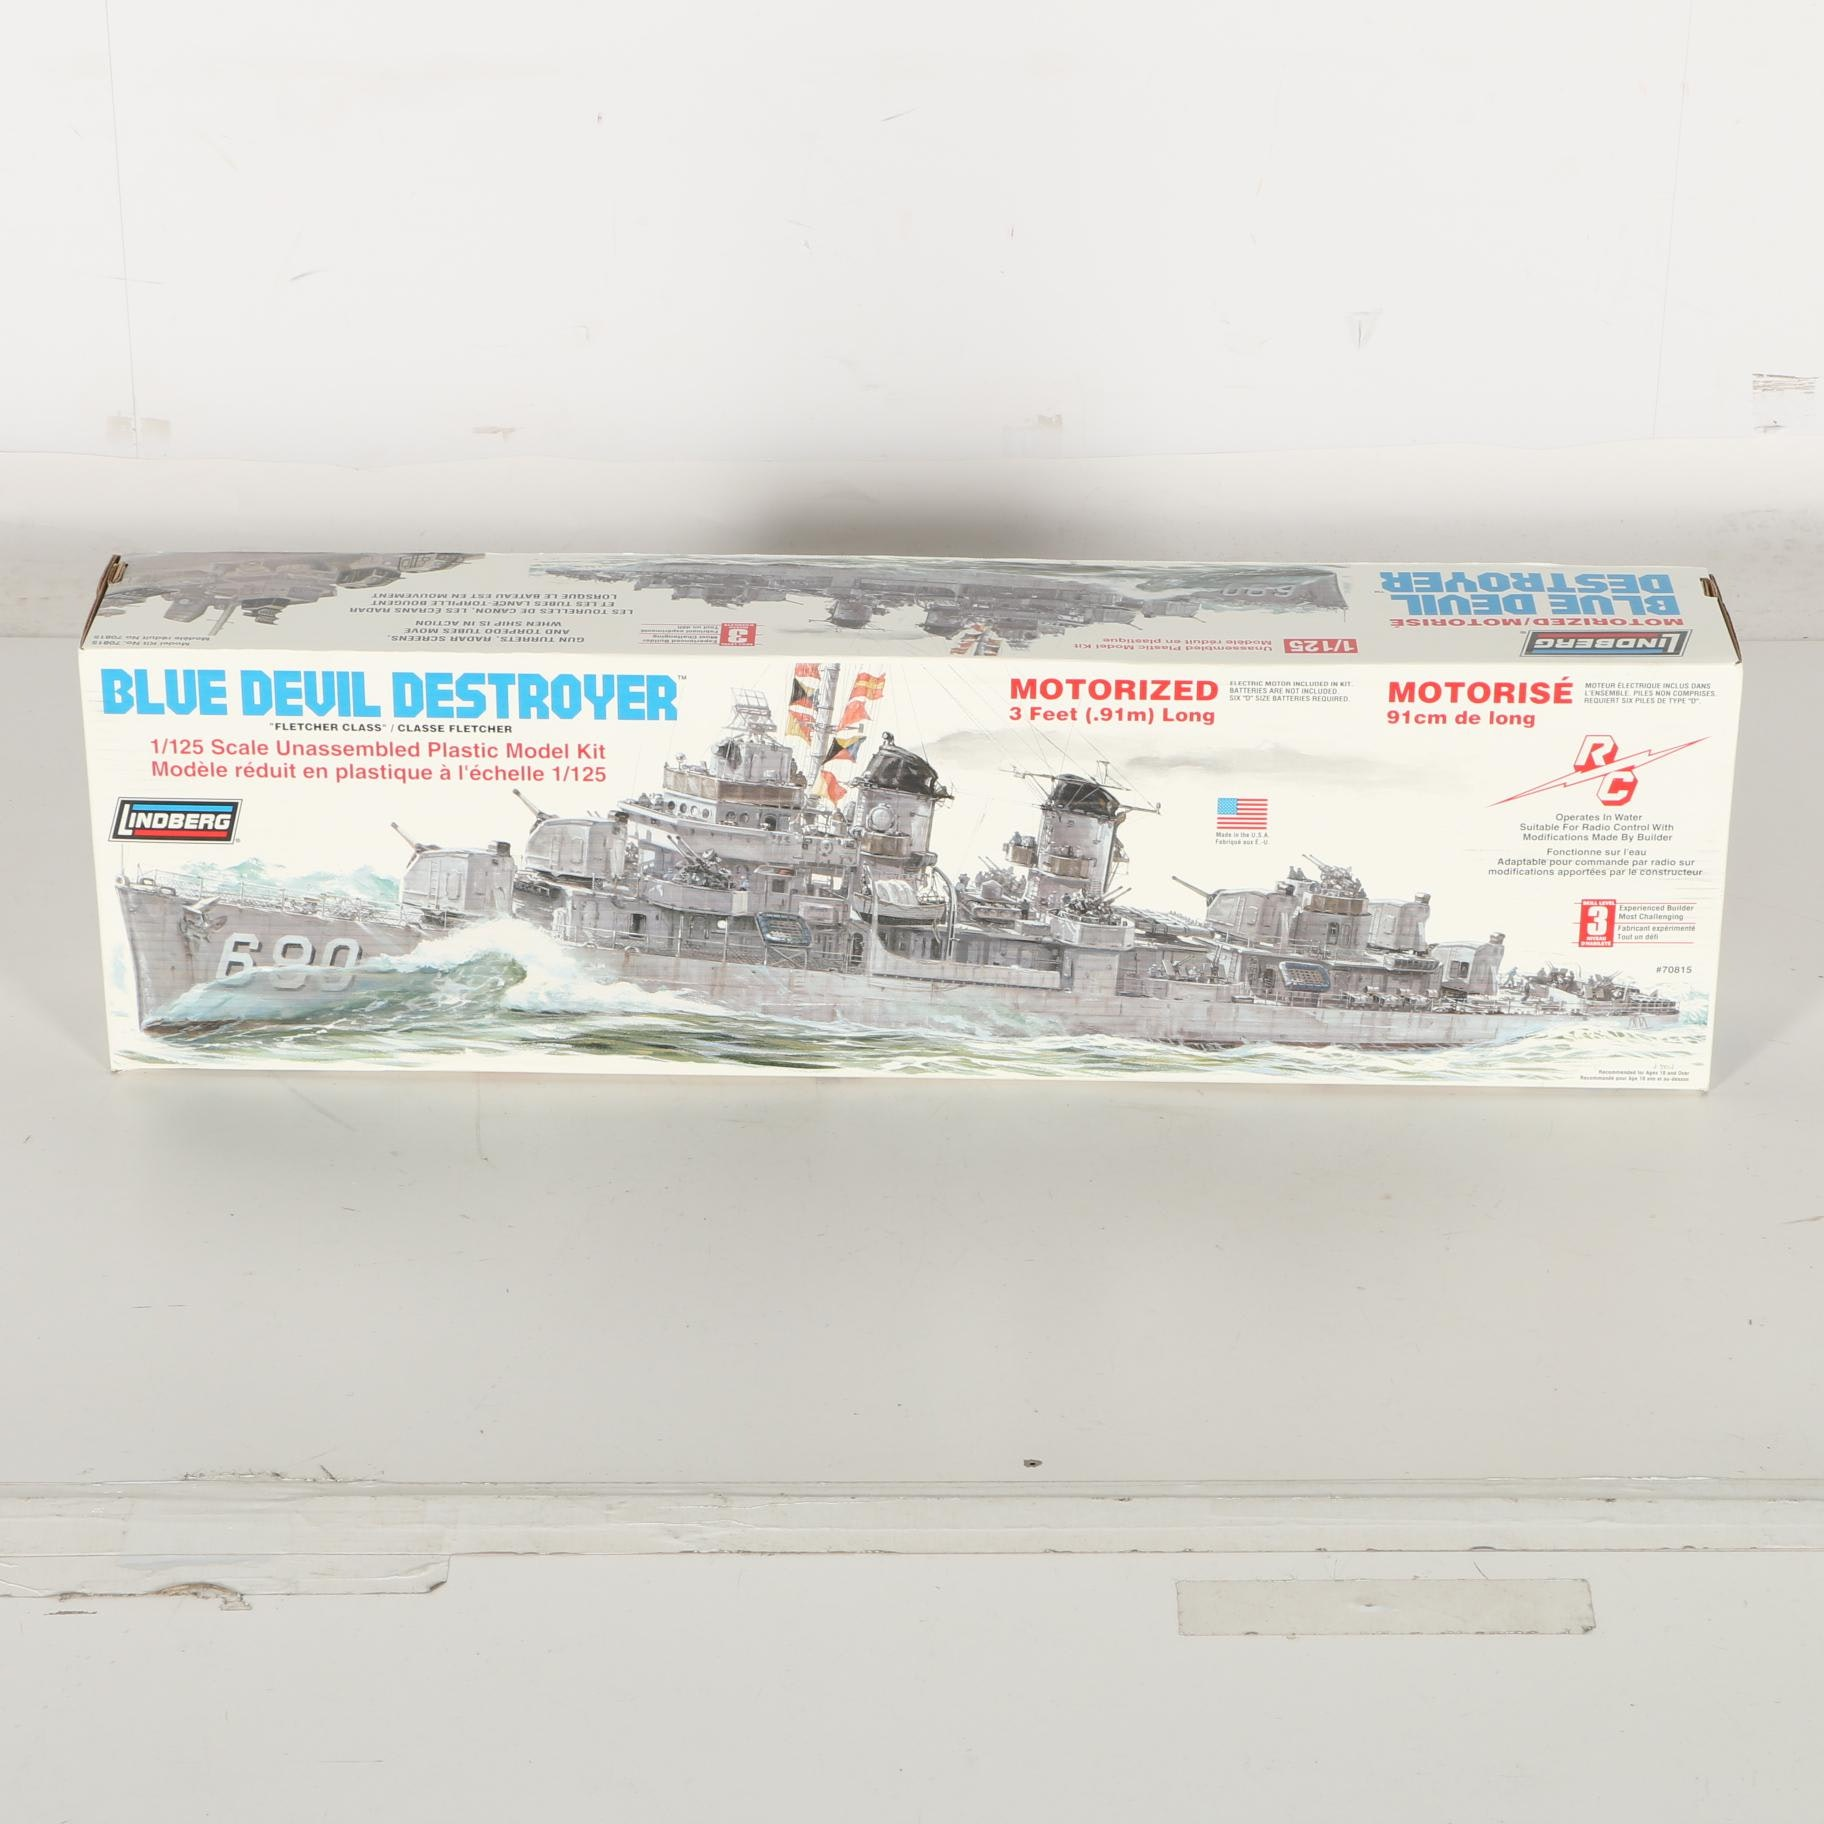 Lindgerg Blue Devil Destroyer 1:125 Scale Model Kit